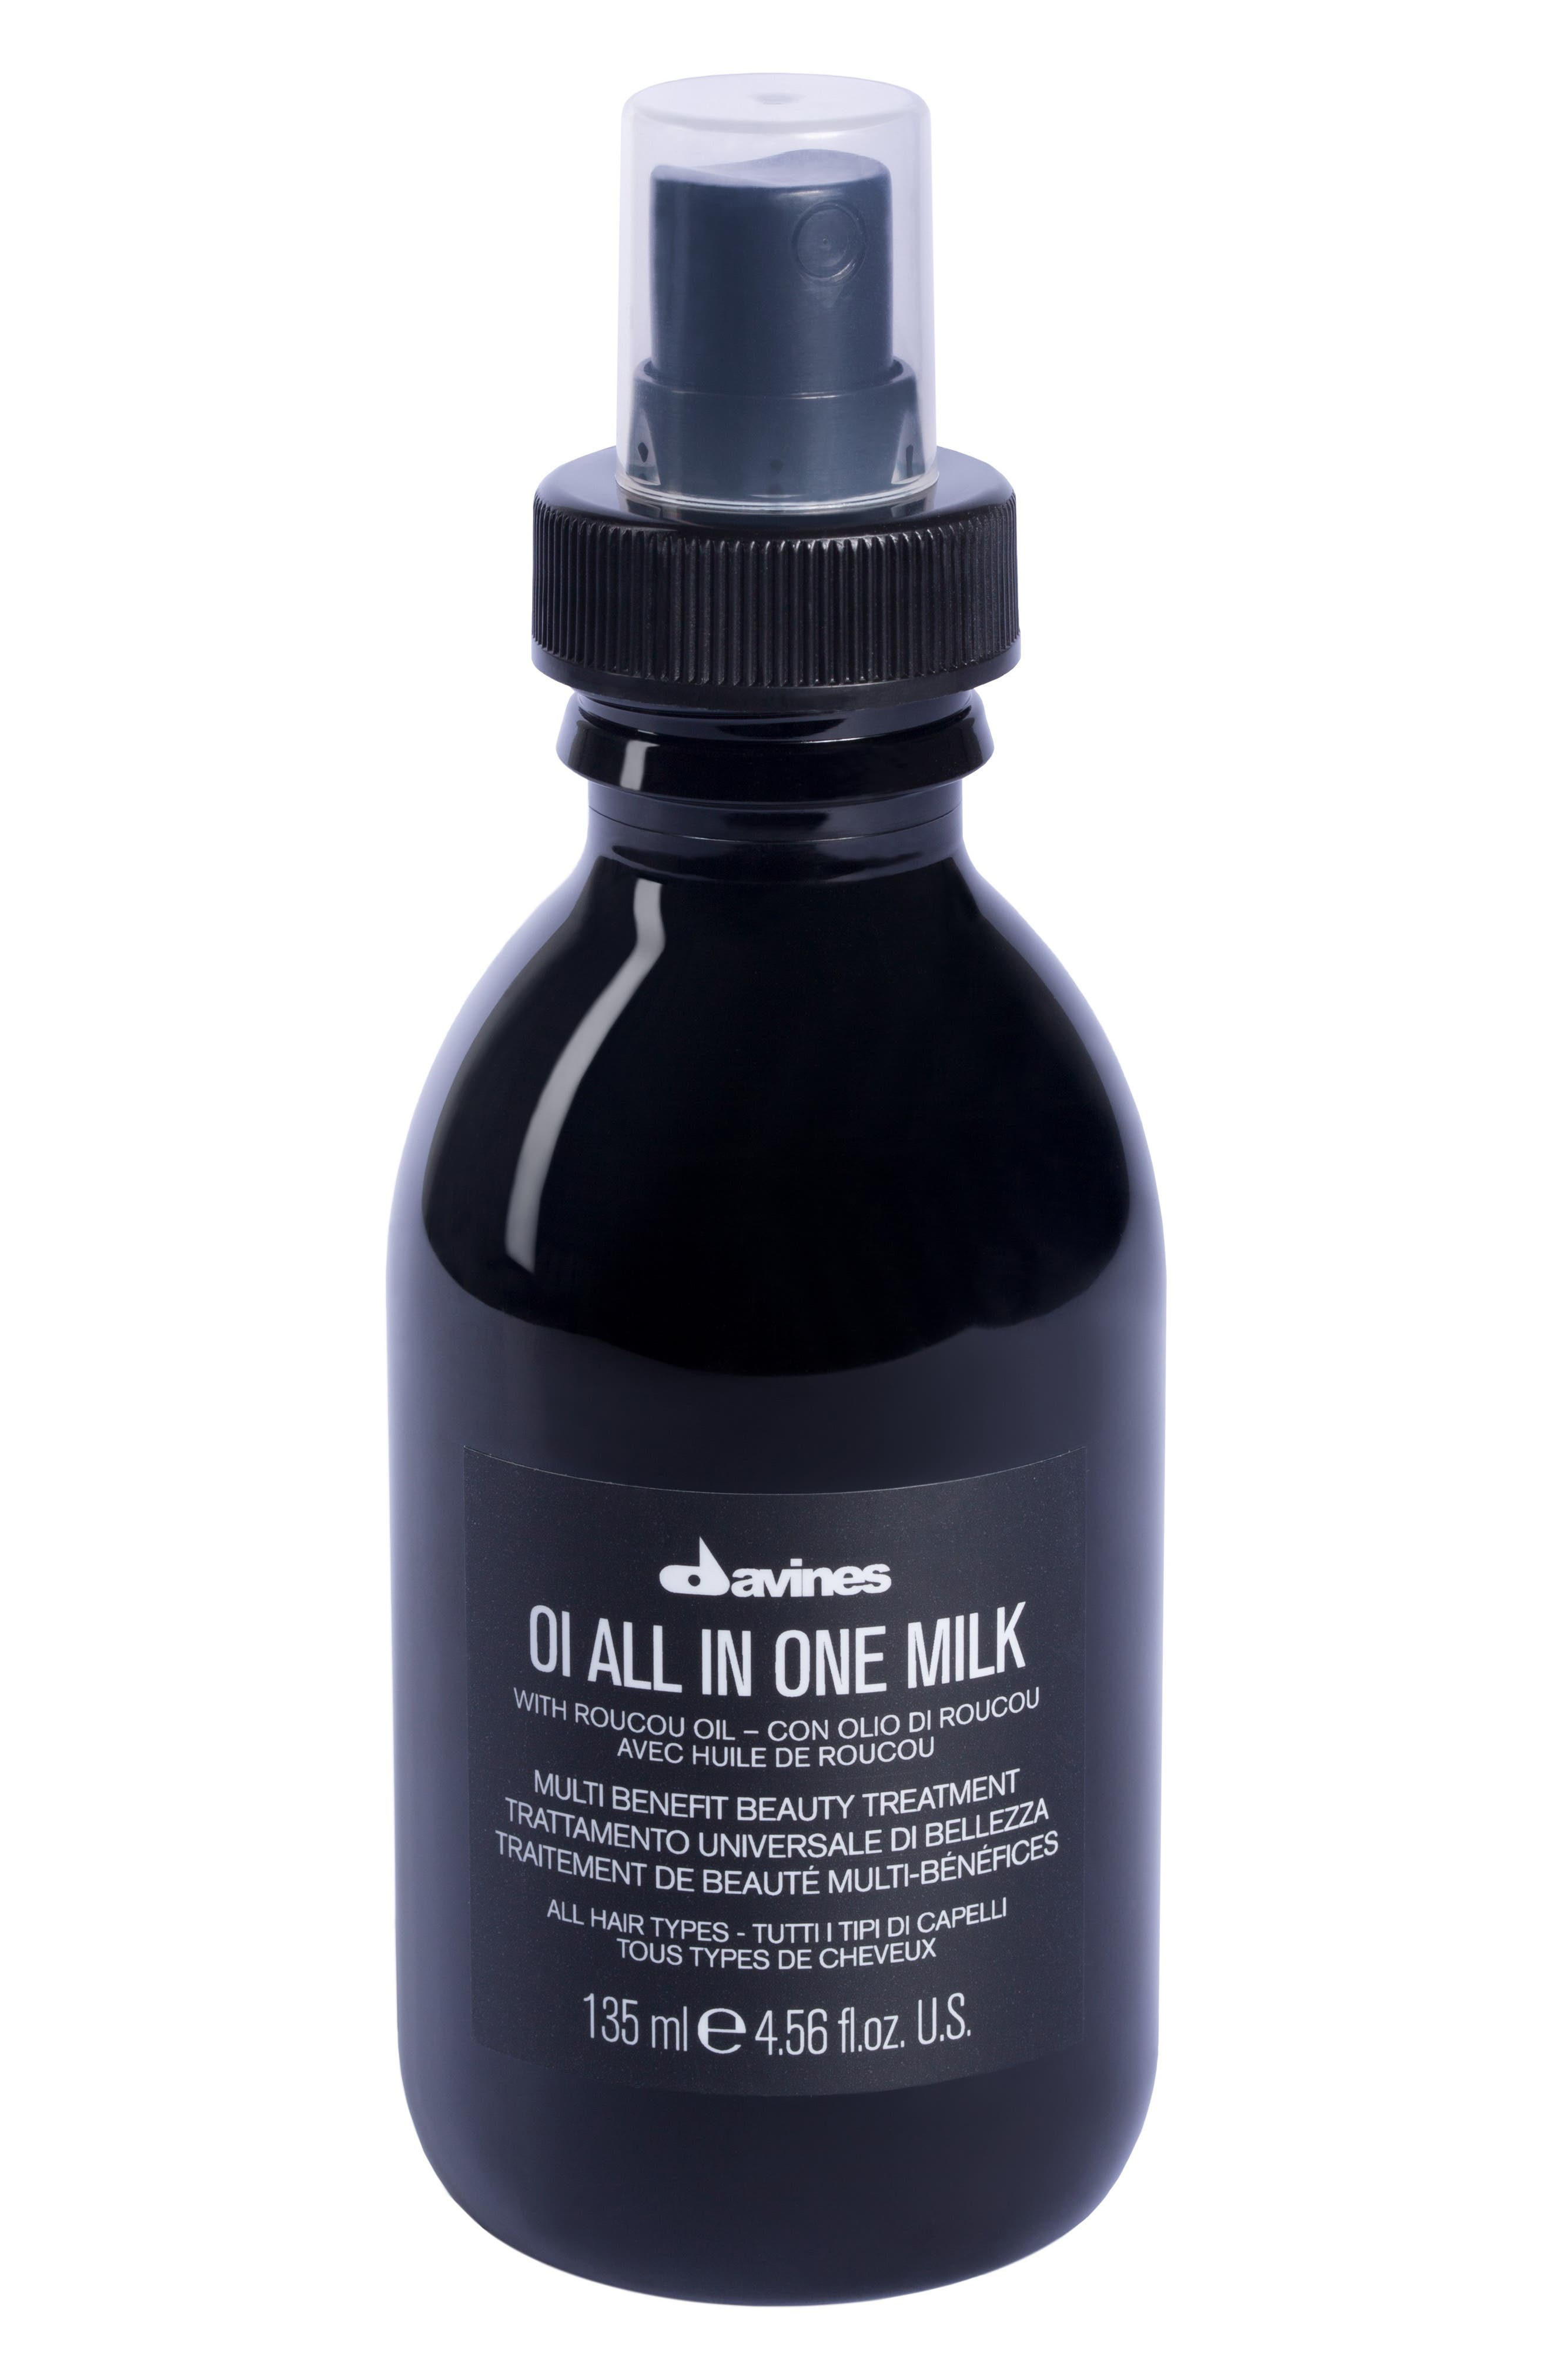 OI All In One Milk at Nordstrom